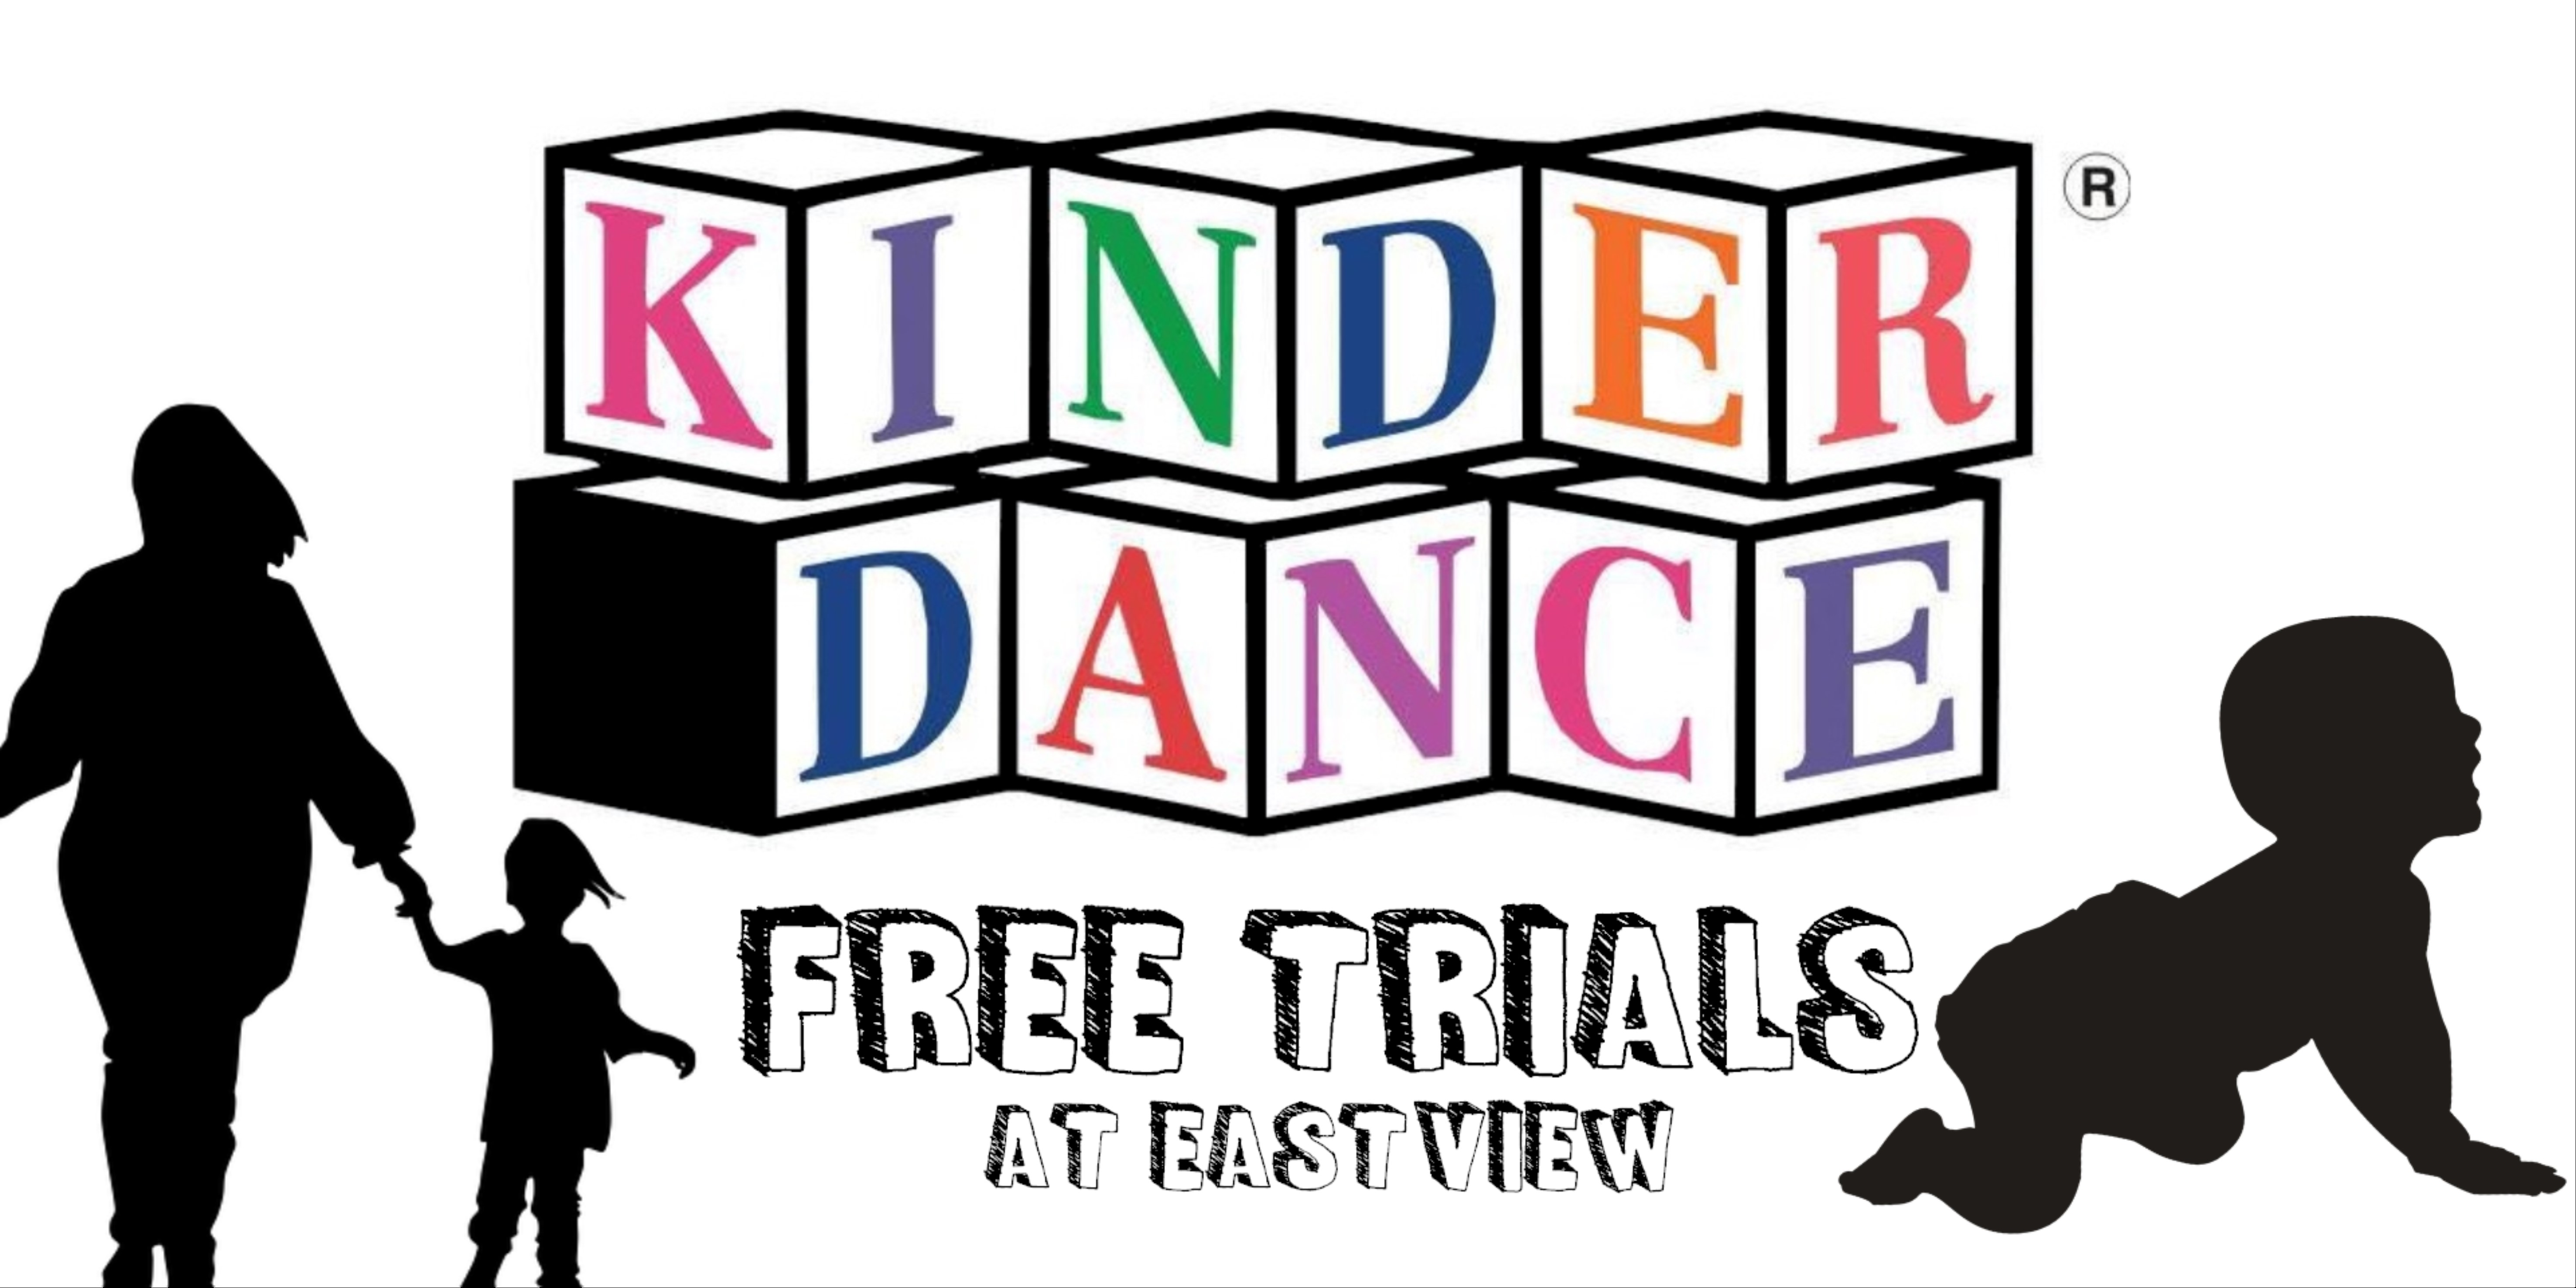 2016-%20kinderdance%20free%20trial